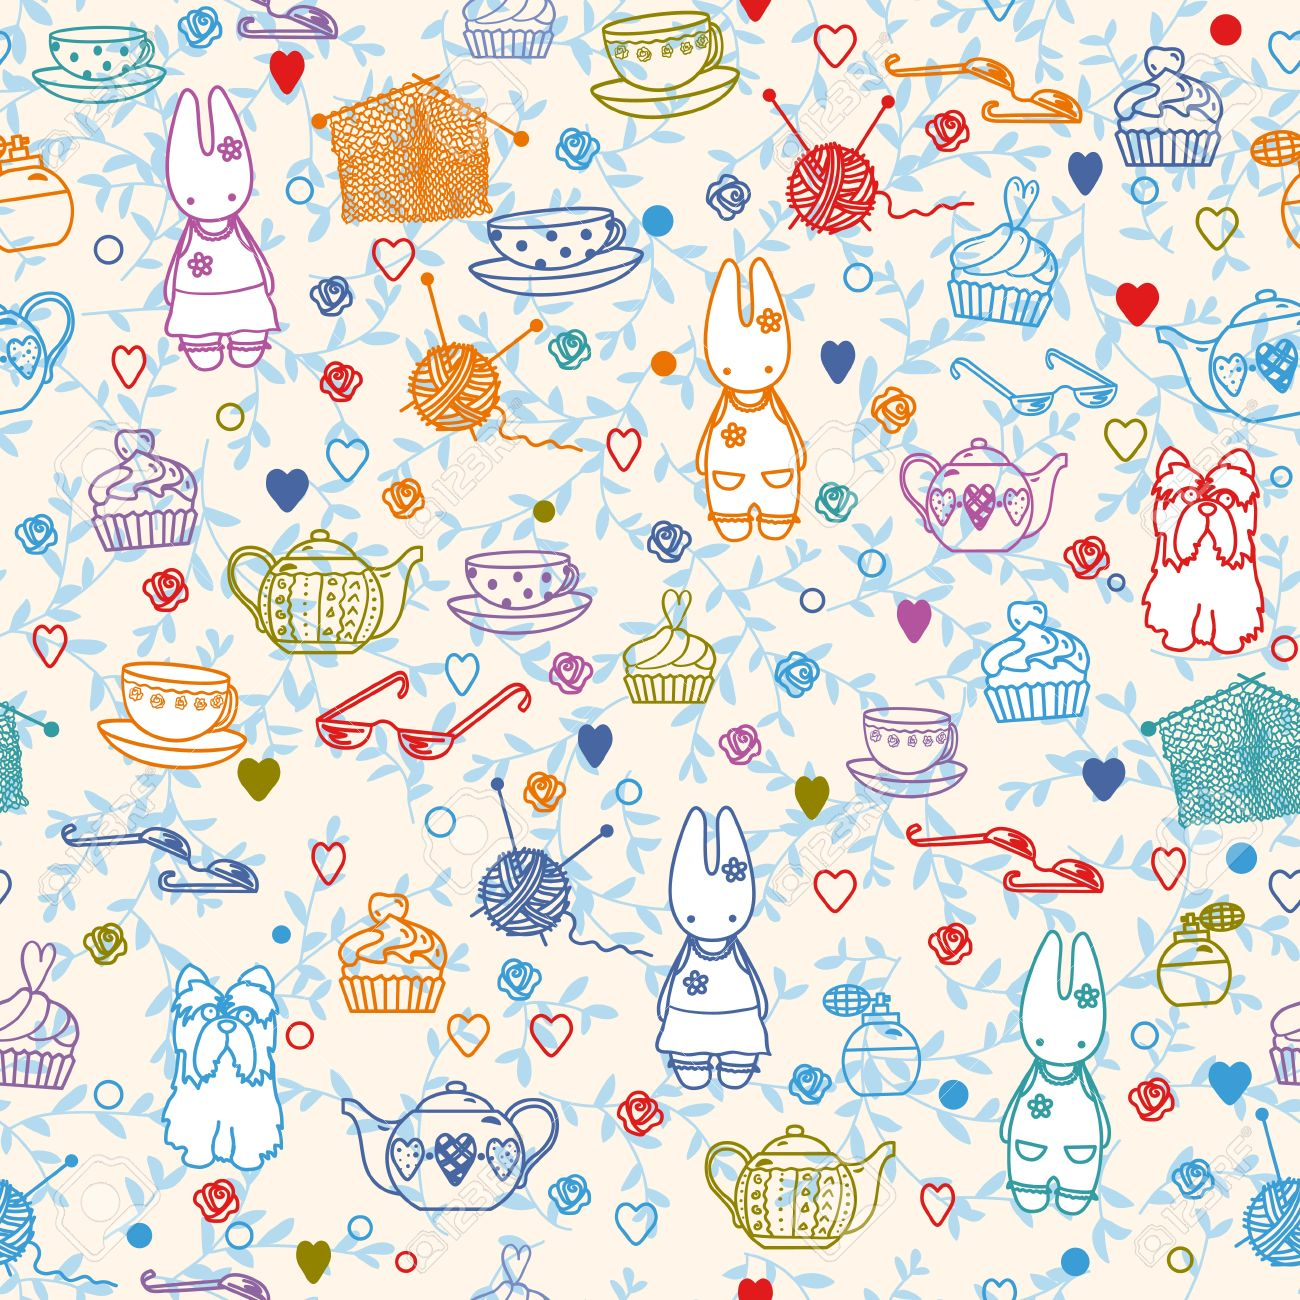 Pastime Things Baby Bunny Tea Pattern Can Be Used For Wallpaper